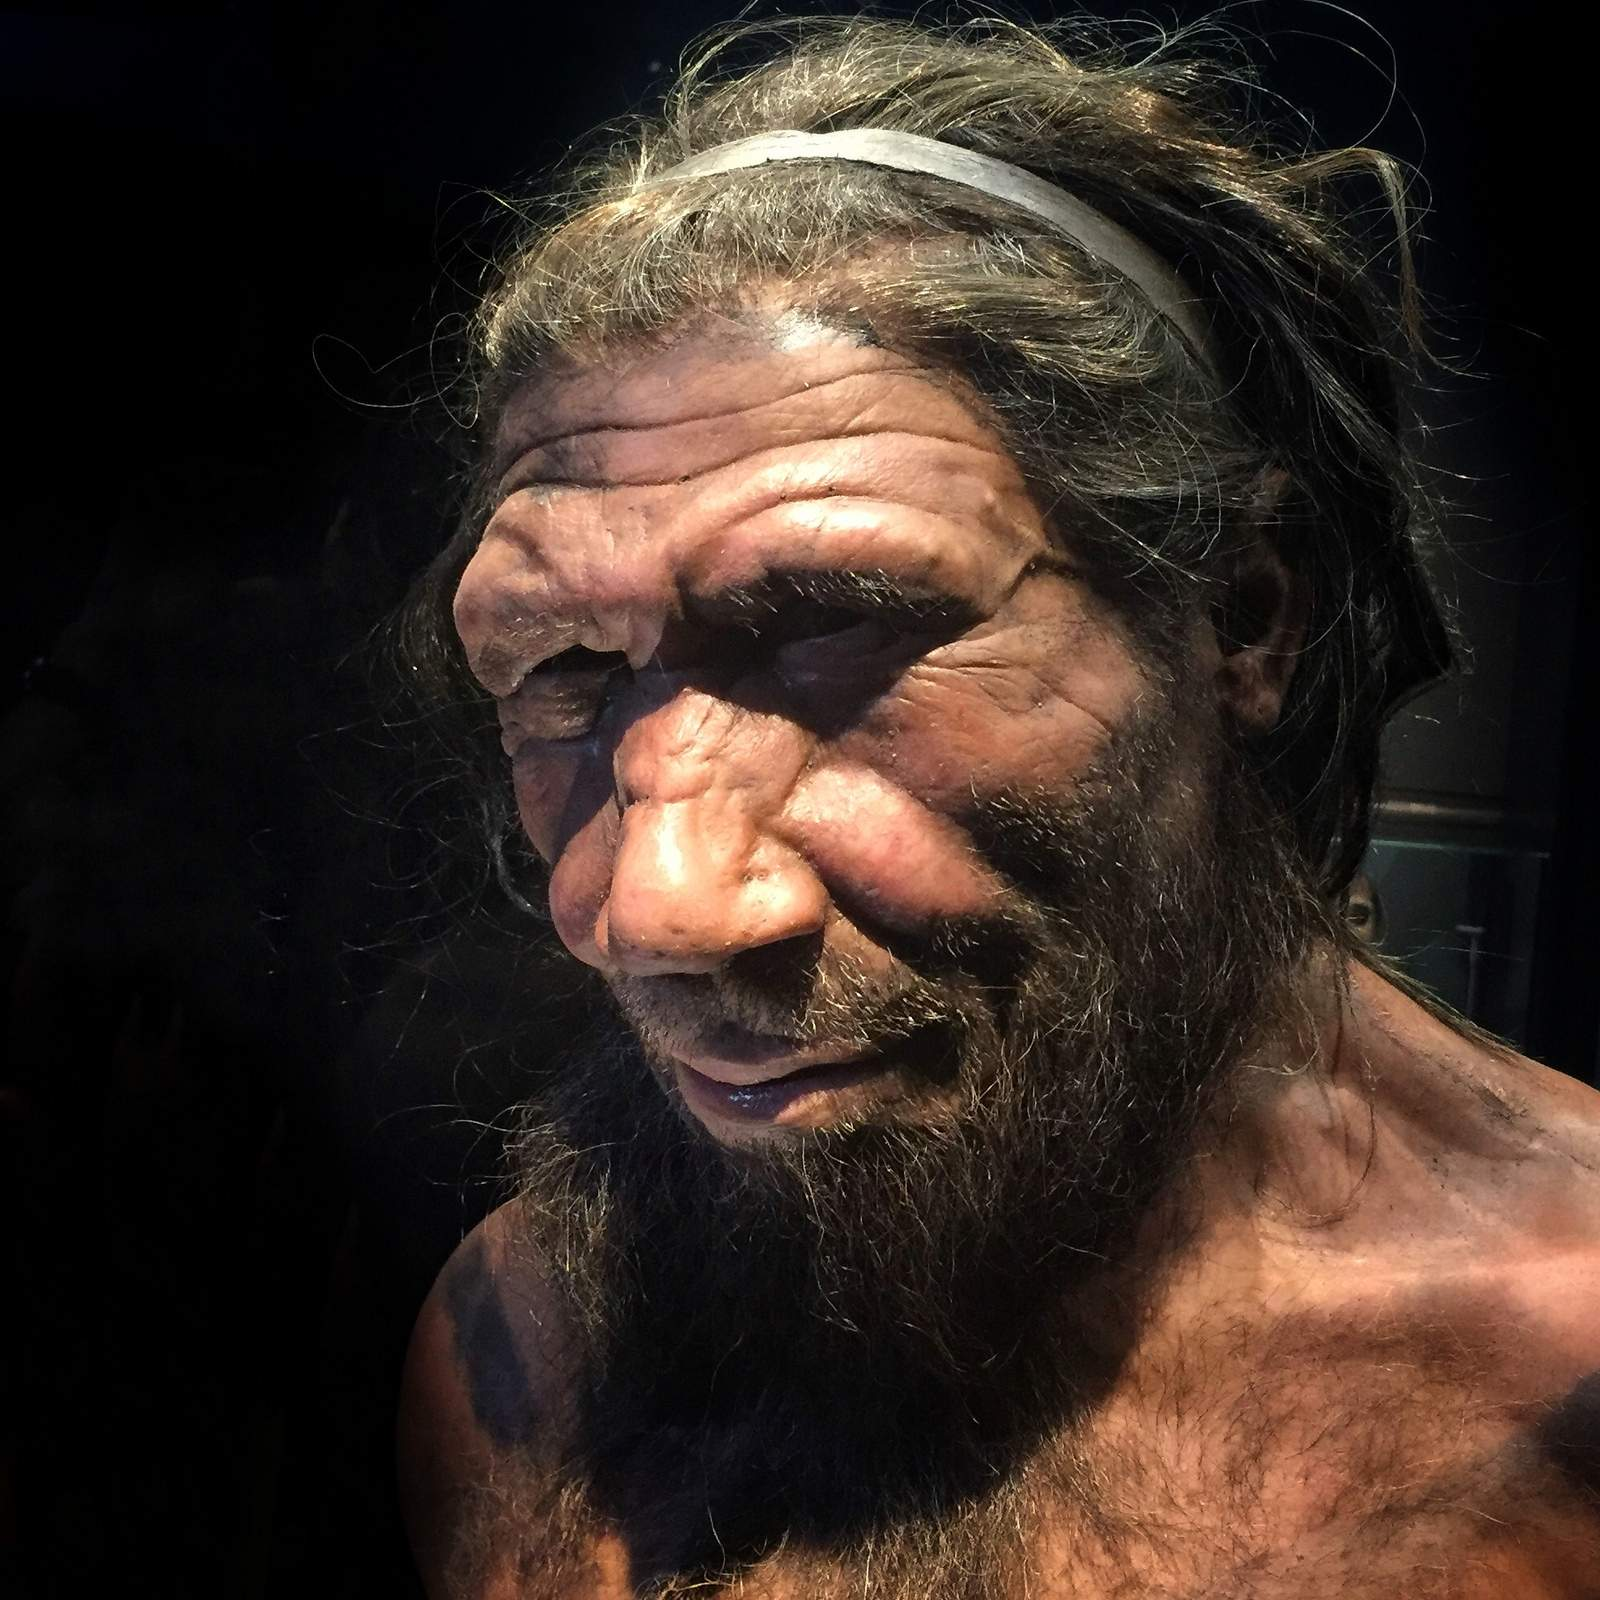 Early humans hooked up with other species a whole bunch